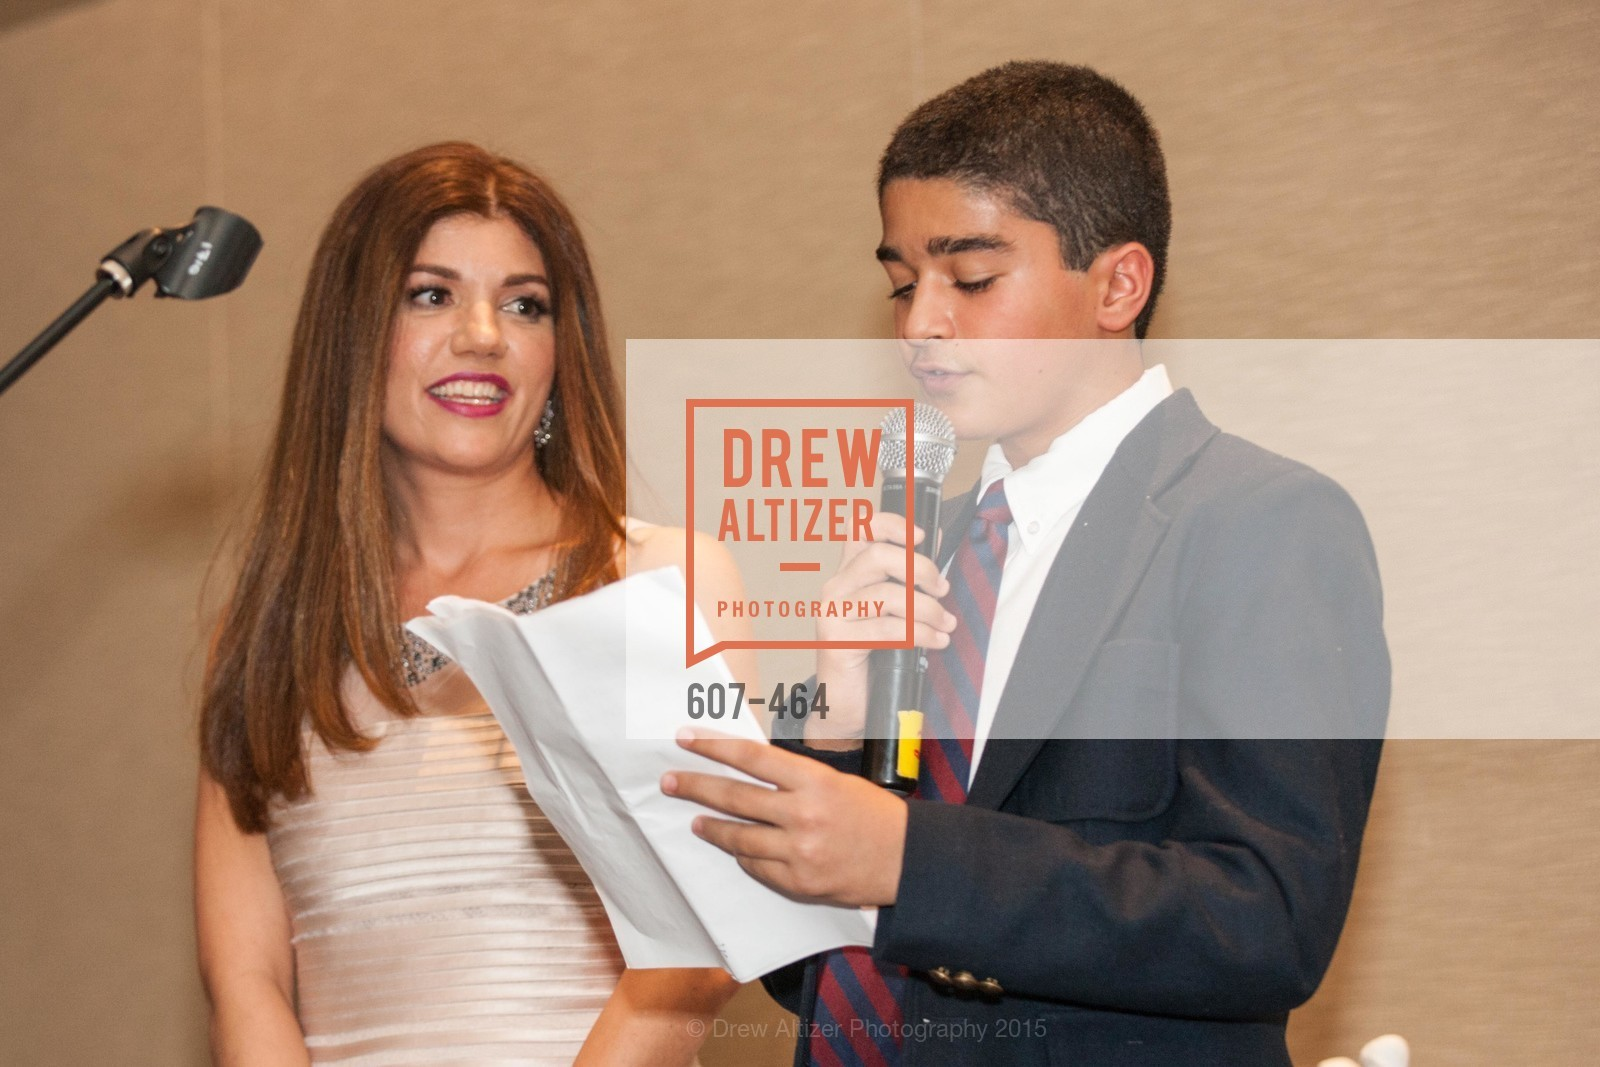 Shabnam Farzaneh, Nicholas Farzaneh, Operation Smile Presents THE SAN FRANCISCO 2015 SMILE GALA, InterContinental Hotel, November 7th, 2015,Drew Altizer, Drew Altizer Photography, full-service agency, private events, San Francisco photographer, photographer california